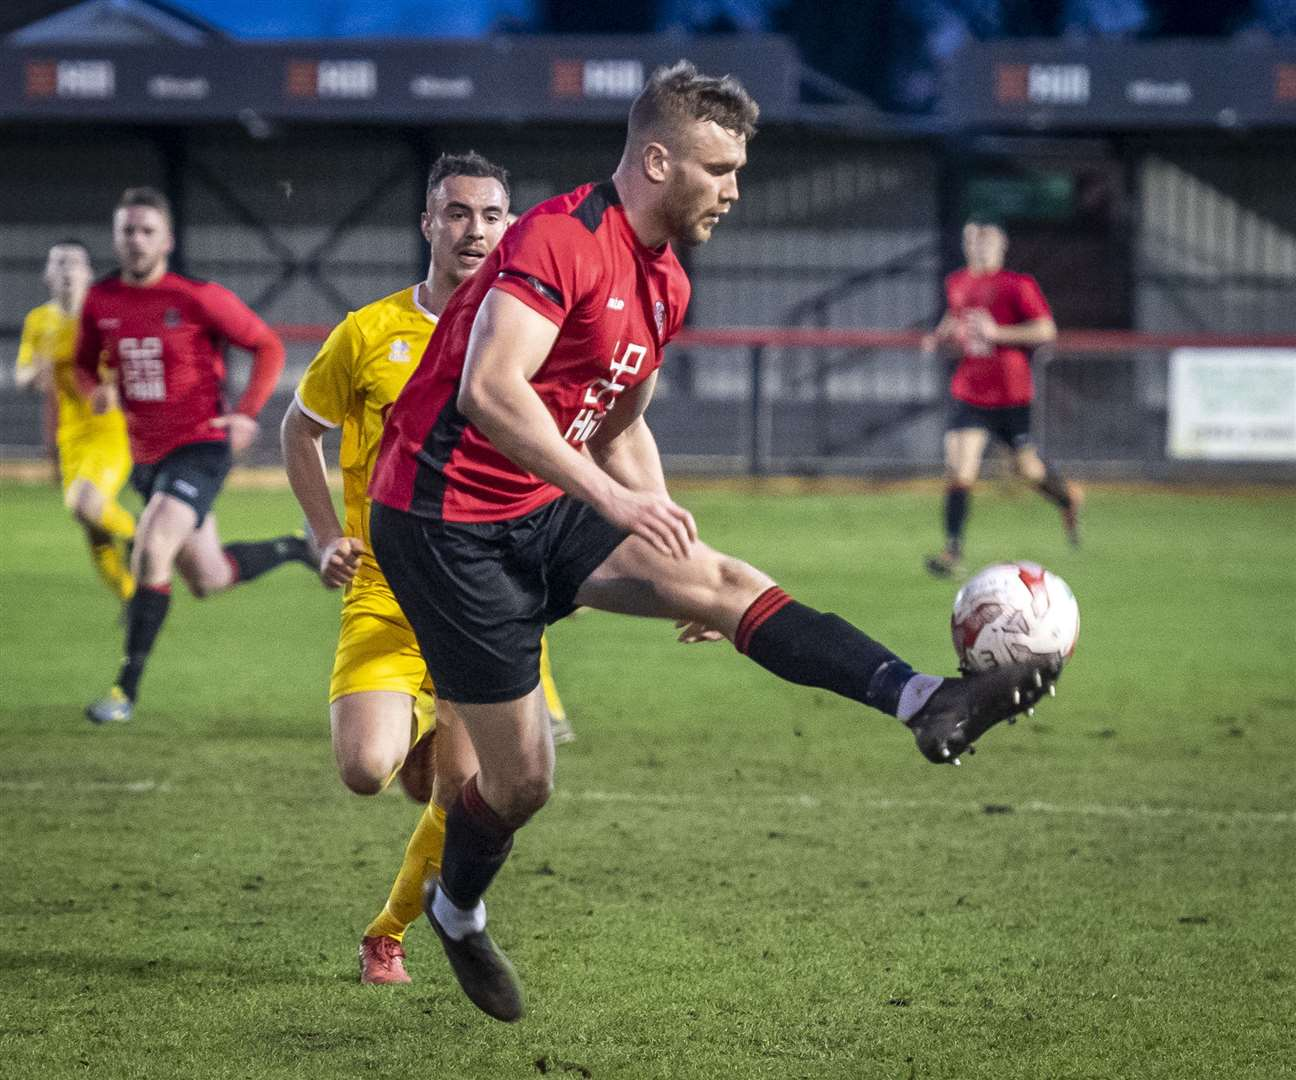 Ed Rolph scored for Histon at Kirkley & Pakefield. Picture: Keith Heppell